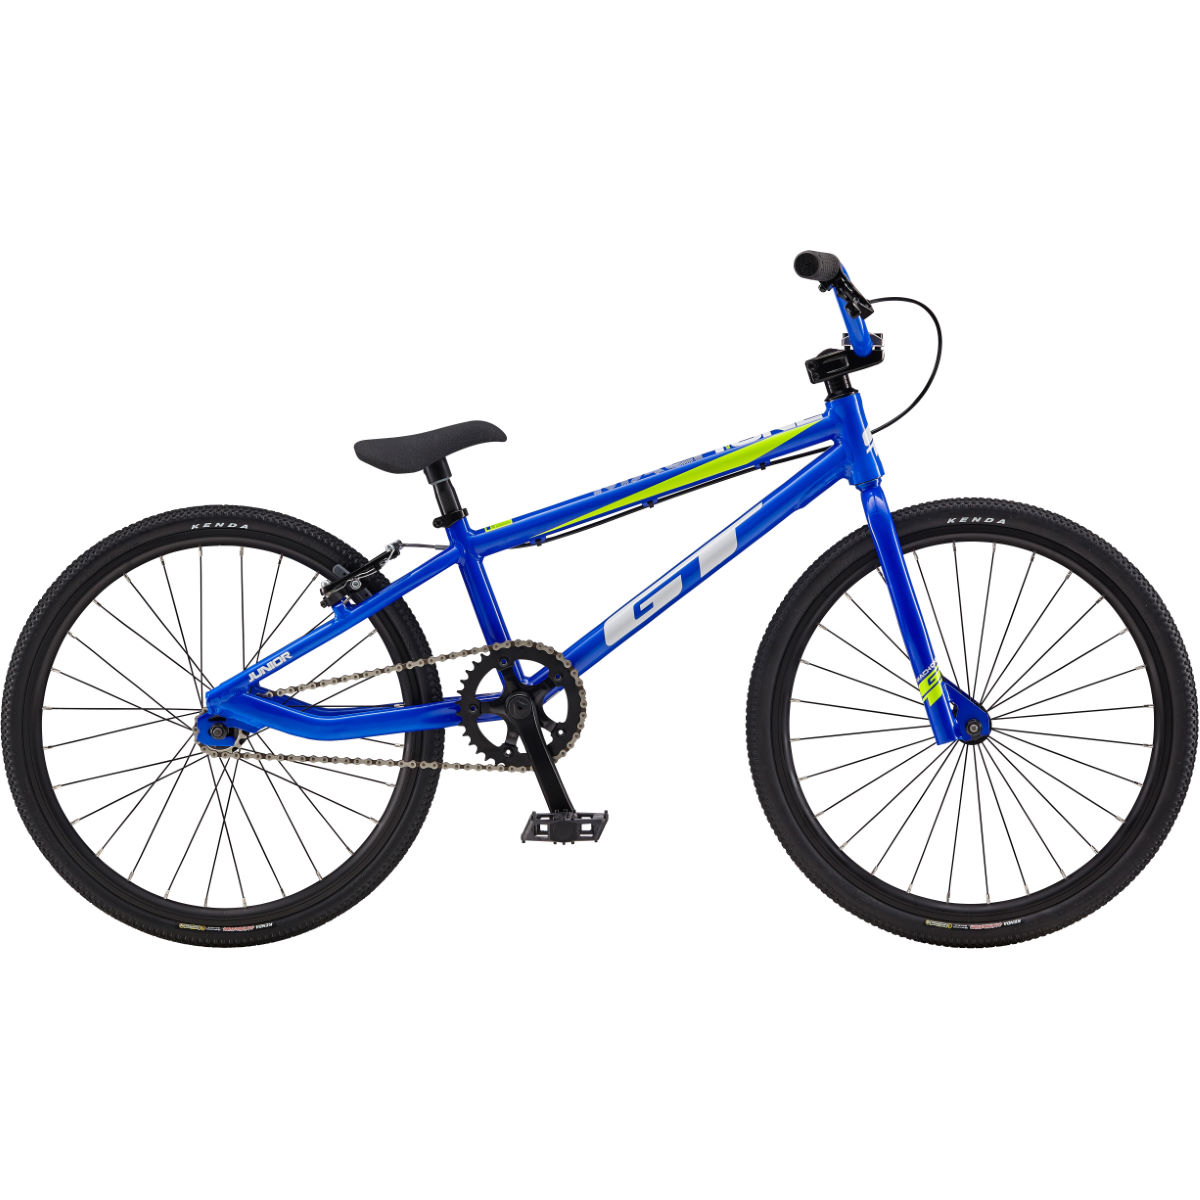 GT Mach One Junior (2019) Bike - Bicicletas de BMX Freestyle